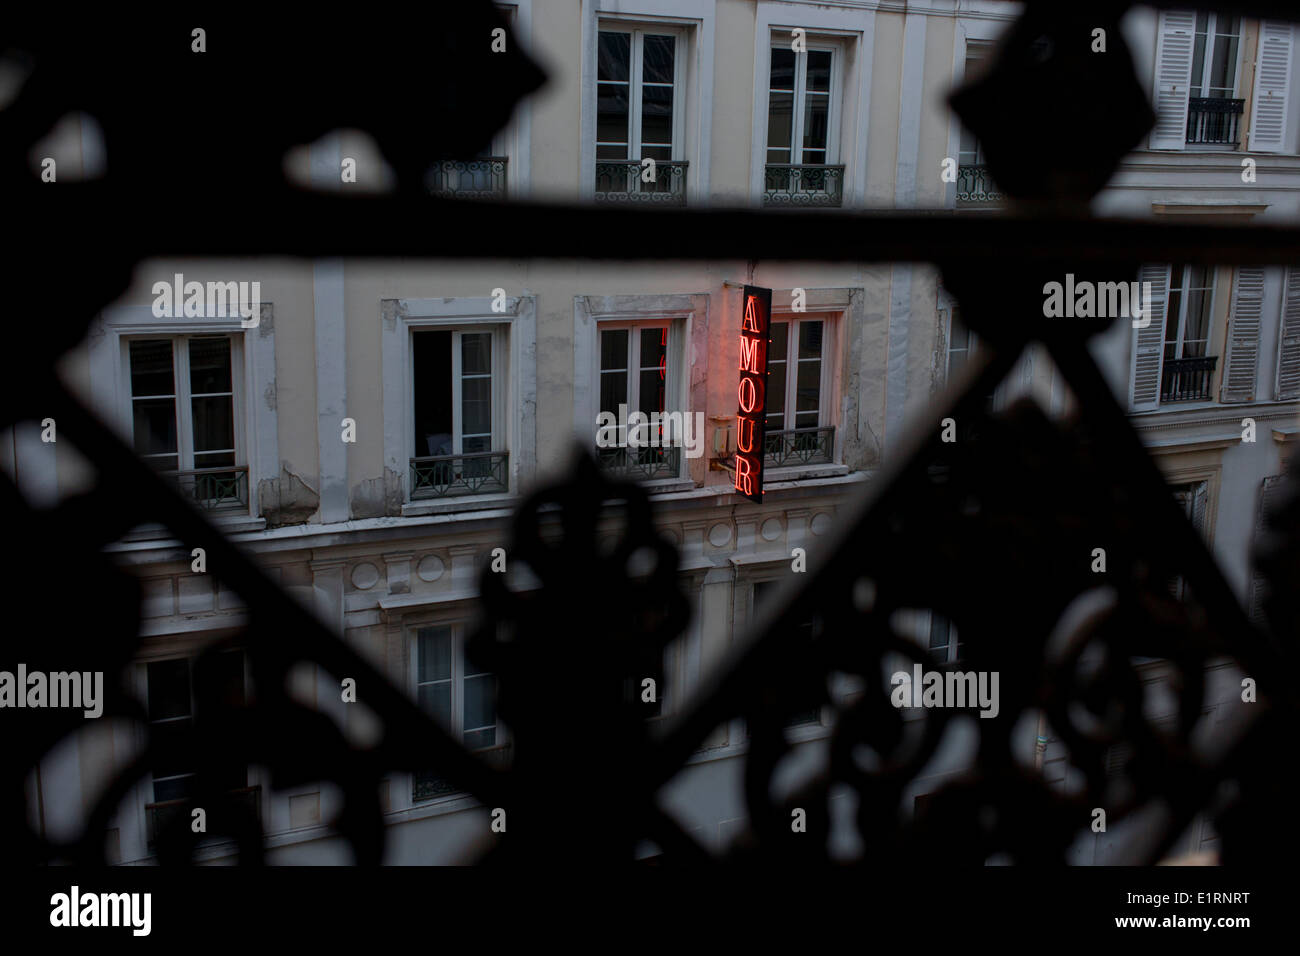 Neon sign outside the Amour Hotel at 8 rue Navarin, 9th Arrondissement, Paris, France. - Stock Image